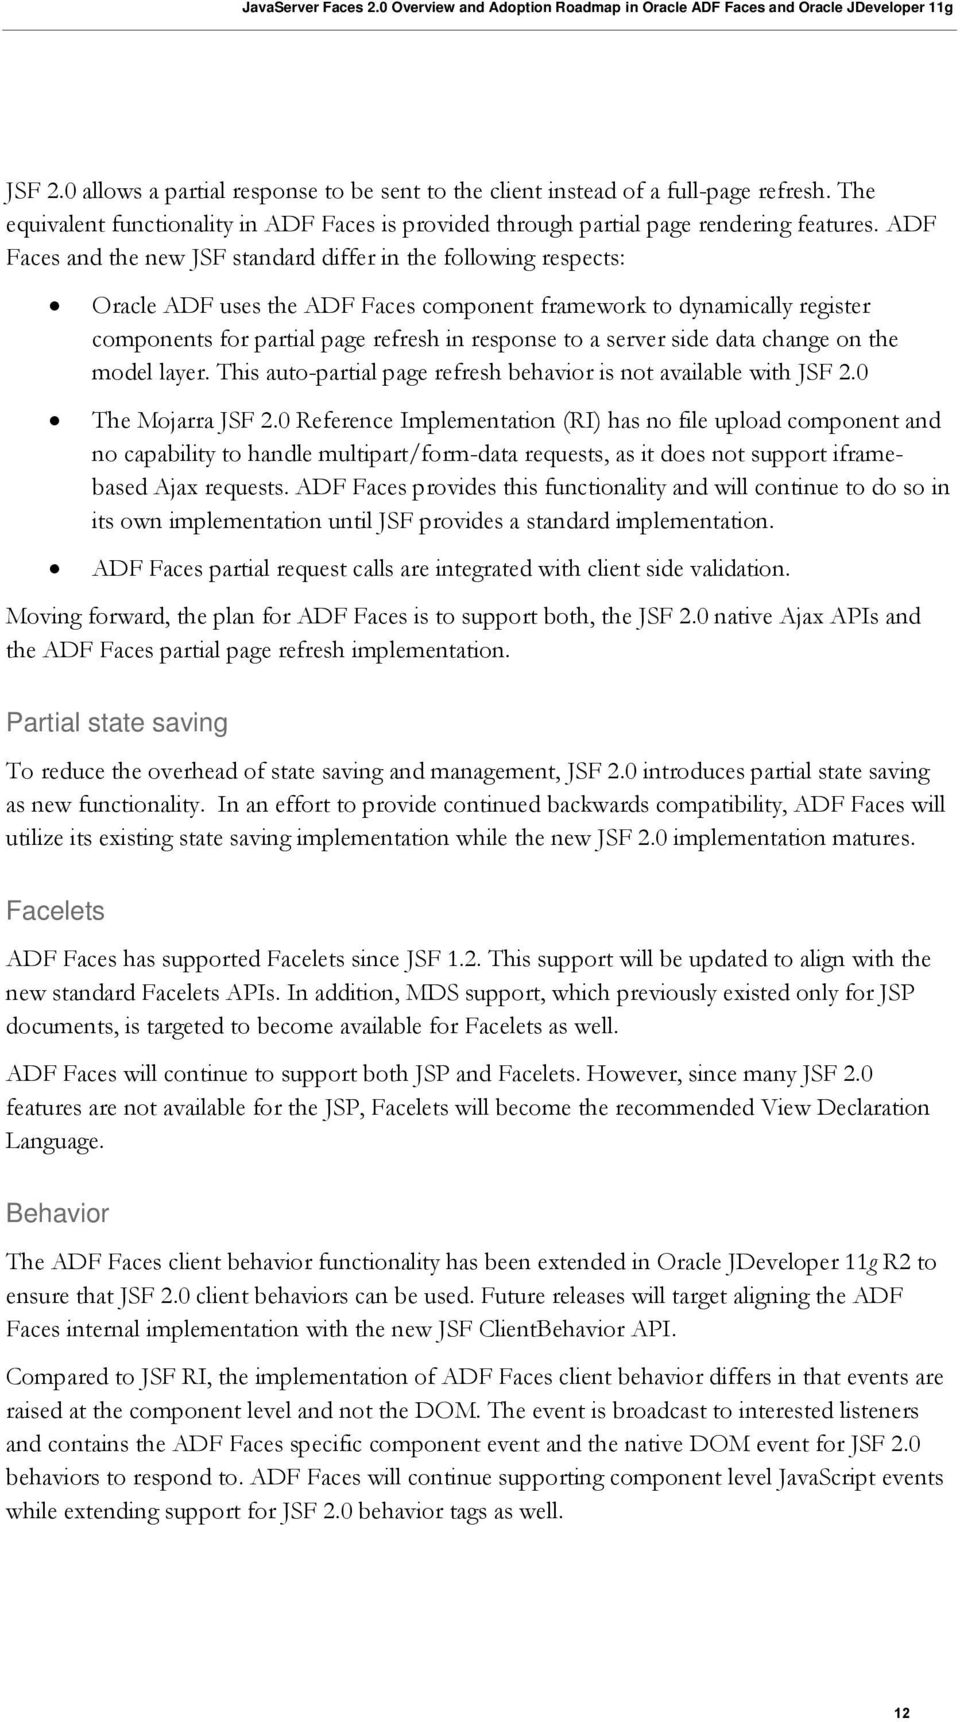 JavaServer Faces 2 0 Overview and Adoption Roadmap in Oracle ADF